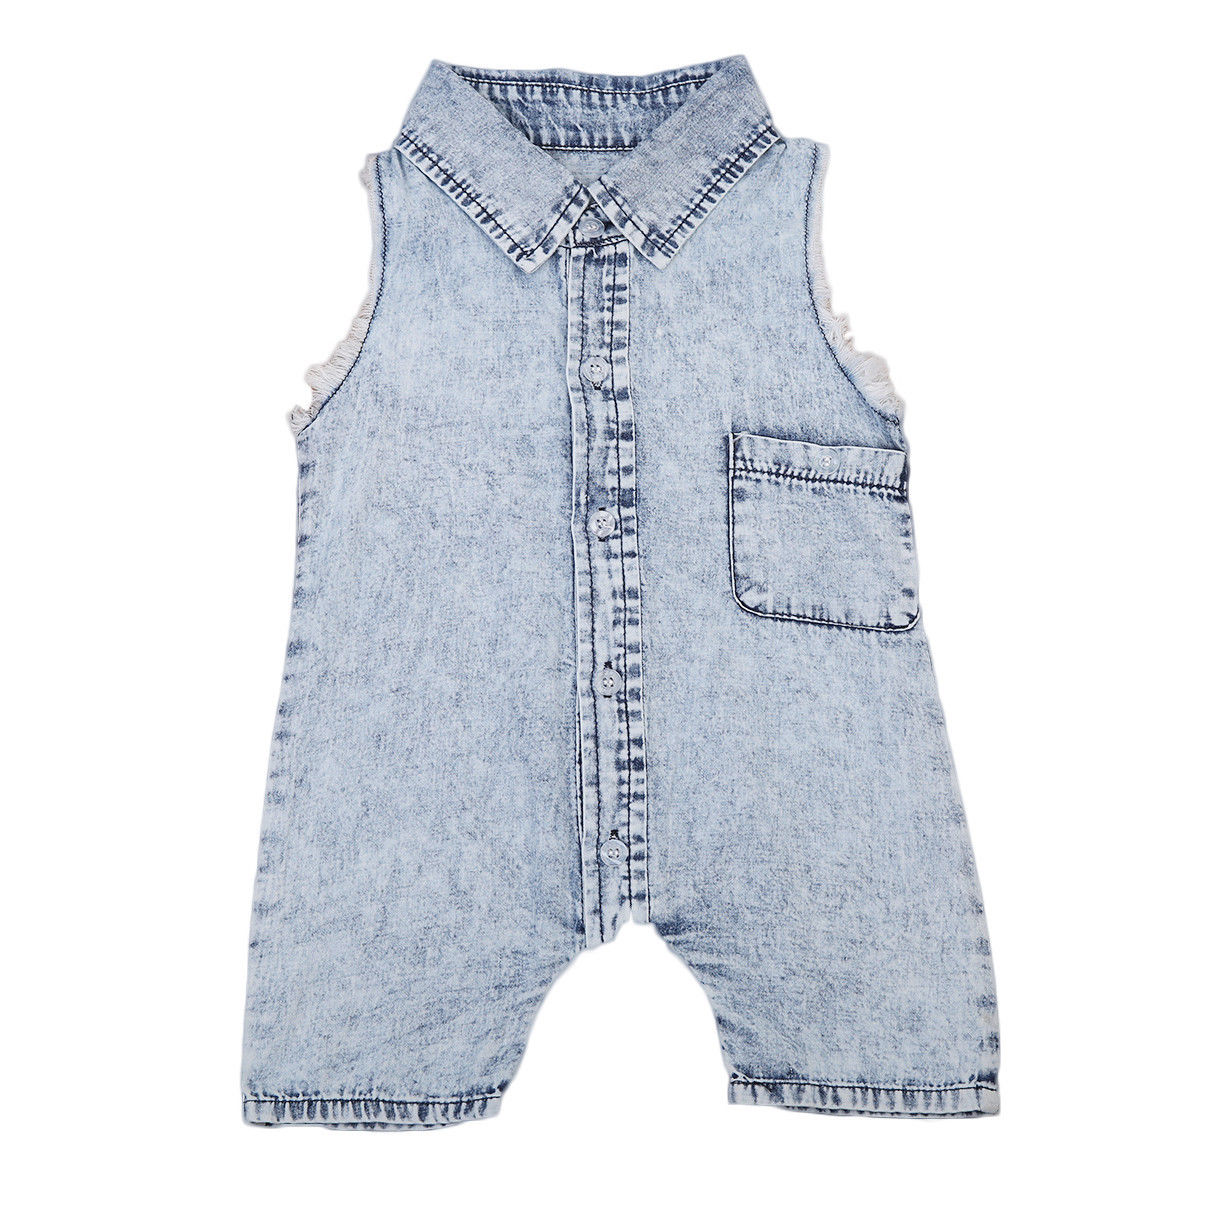 Summer Denim Toddler Baby Vest Sleeveless Romper Infant Boy Girl Jumpsuit Casual Clothes Outfits kid newborn summer clothes toddler baby boy girl sleeveless floral cotton romper outfits sunsuit